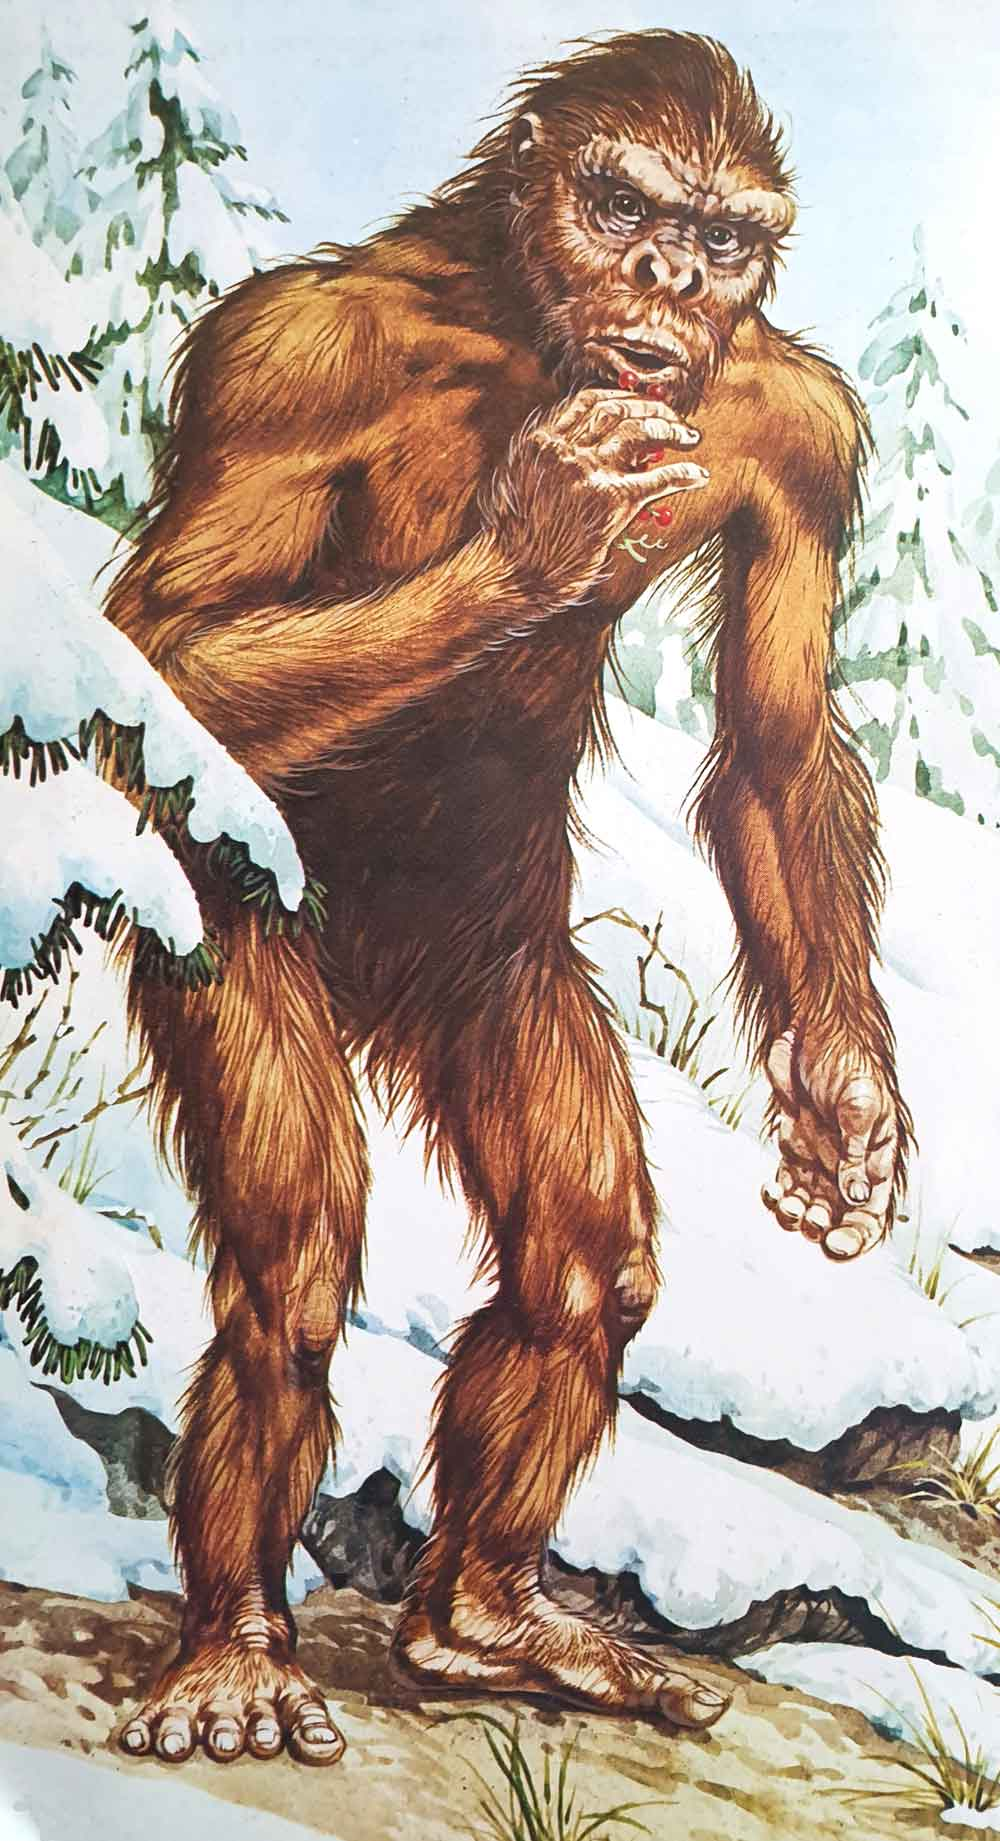 A gracile, thin-furred, 'old man' bigfoot (which is a bit odd, given that the creature is depicted in a snowy landscape). Image: John Francis/Usborne/Miller 1977.